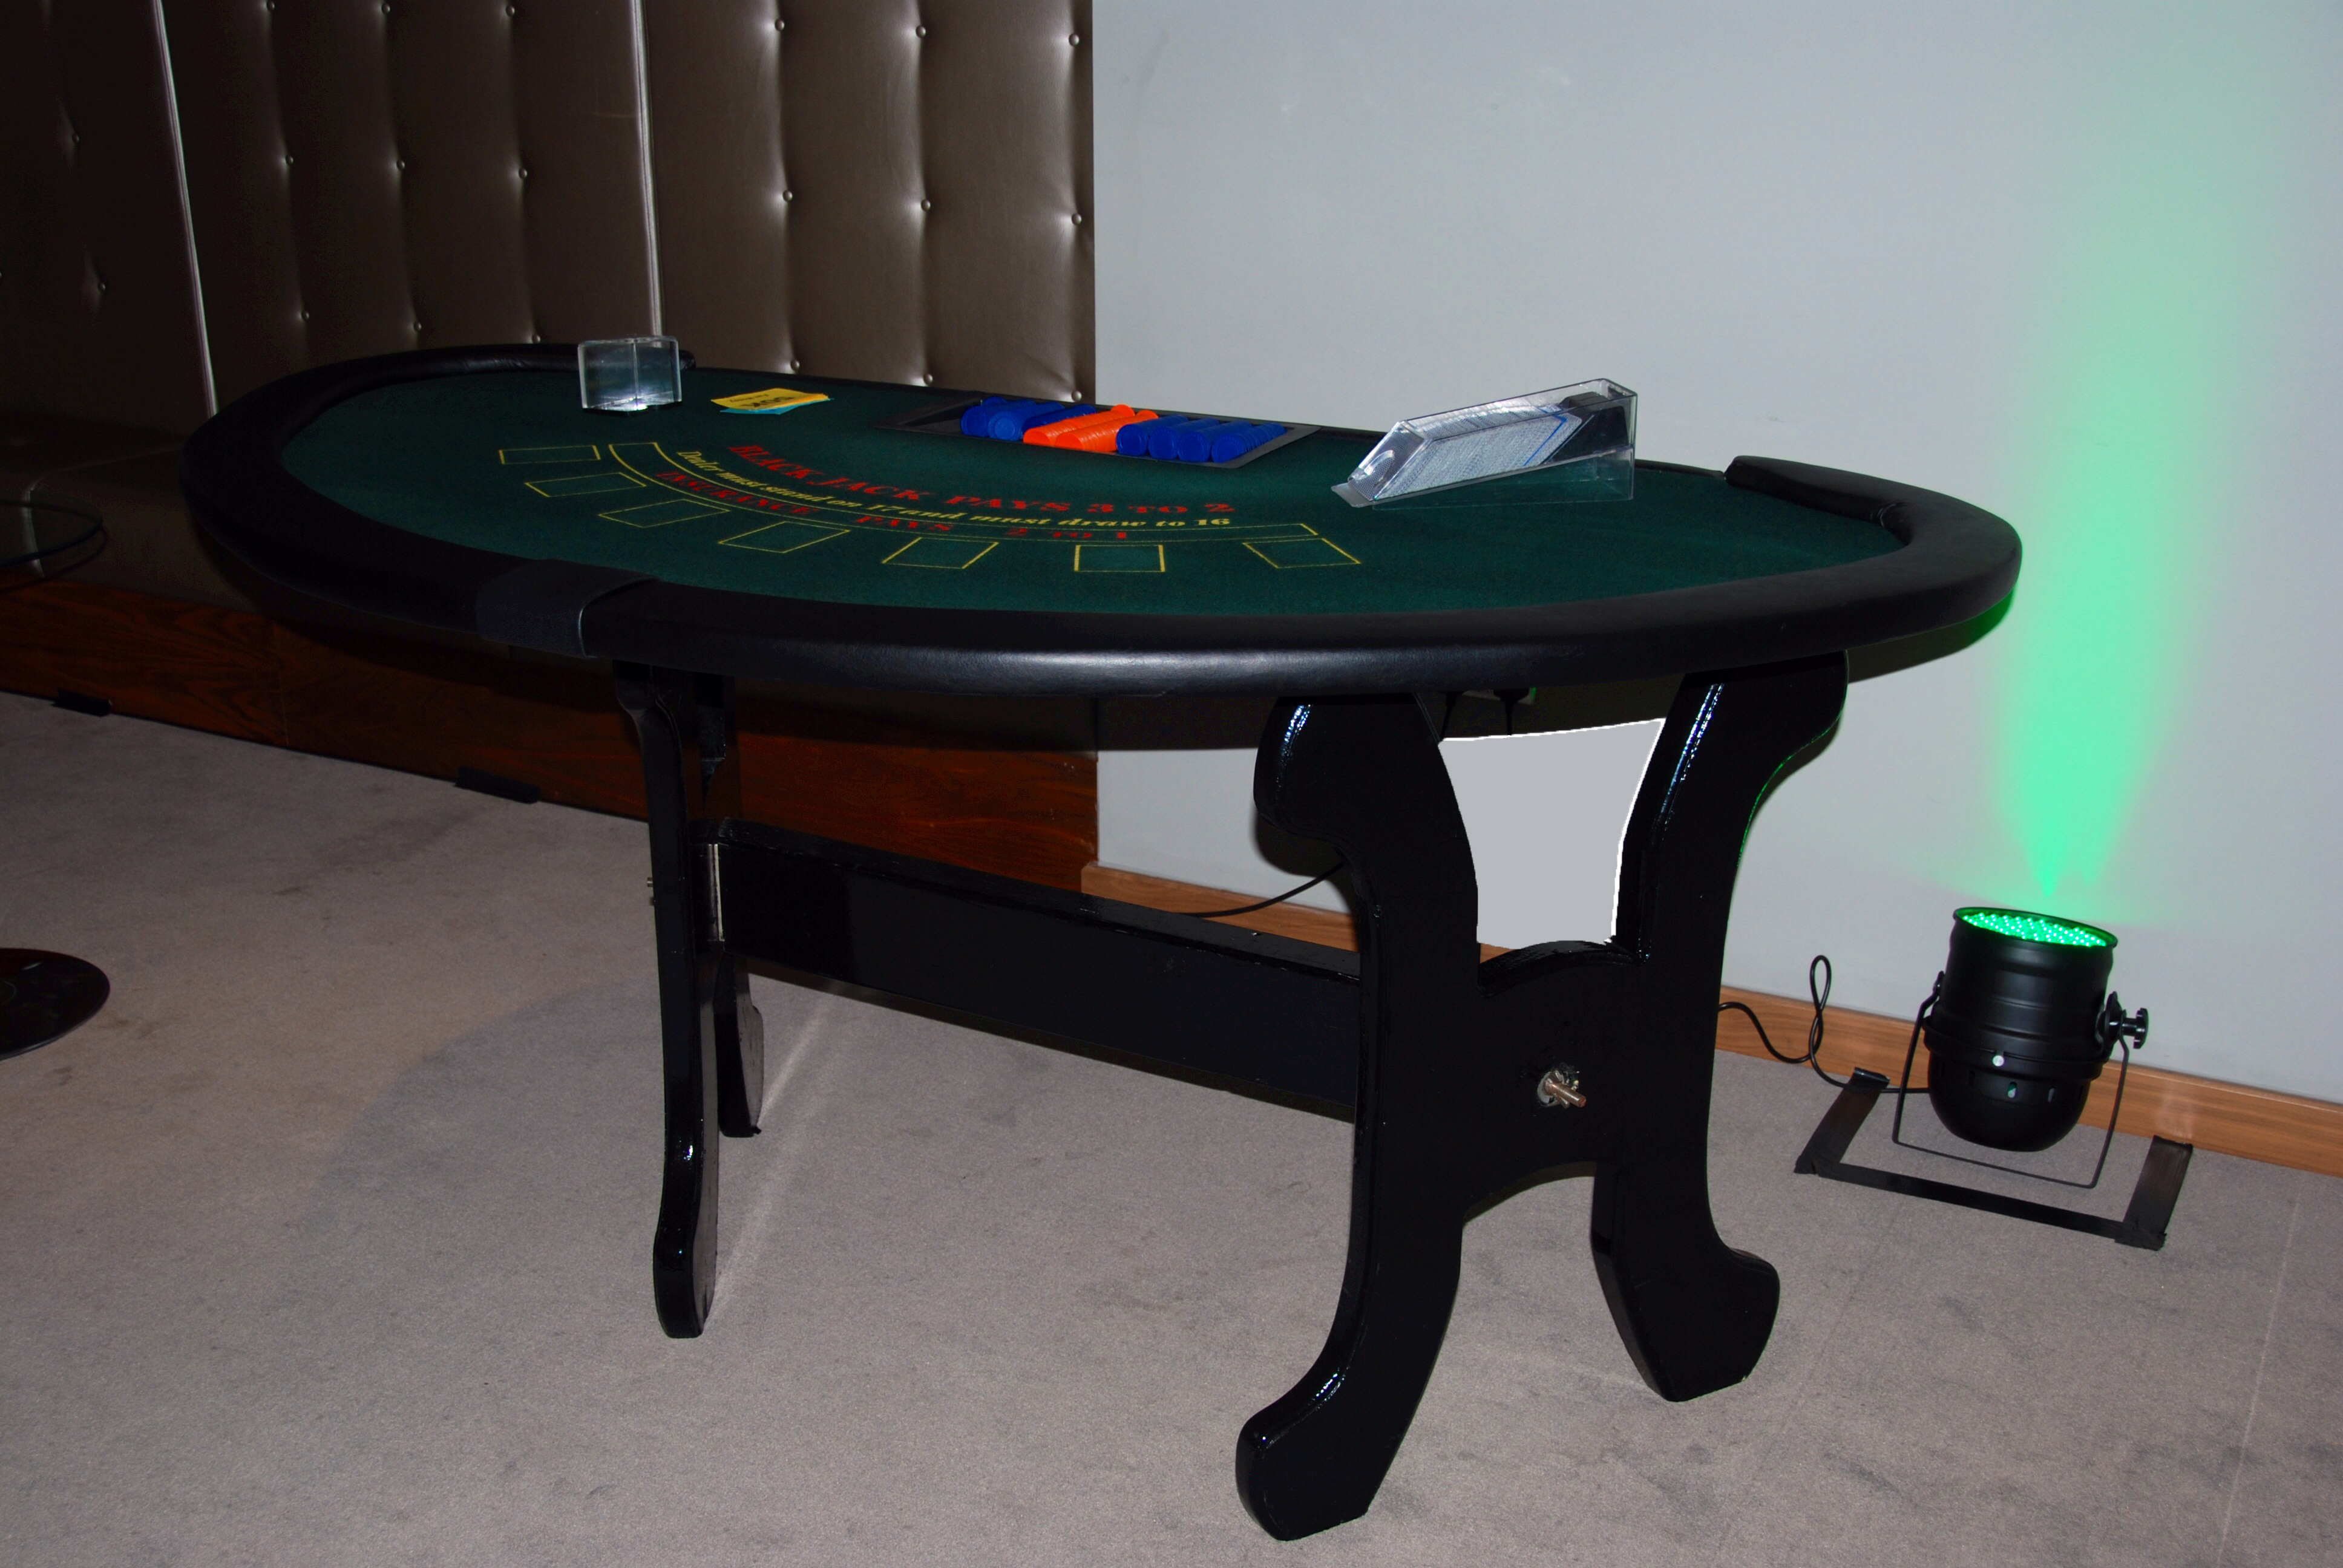 Casino Nights - Roulette - Poker - Blackjack Tables for Hire